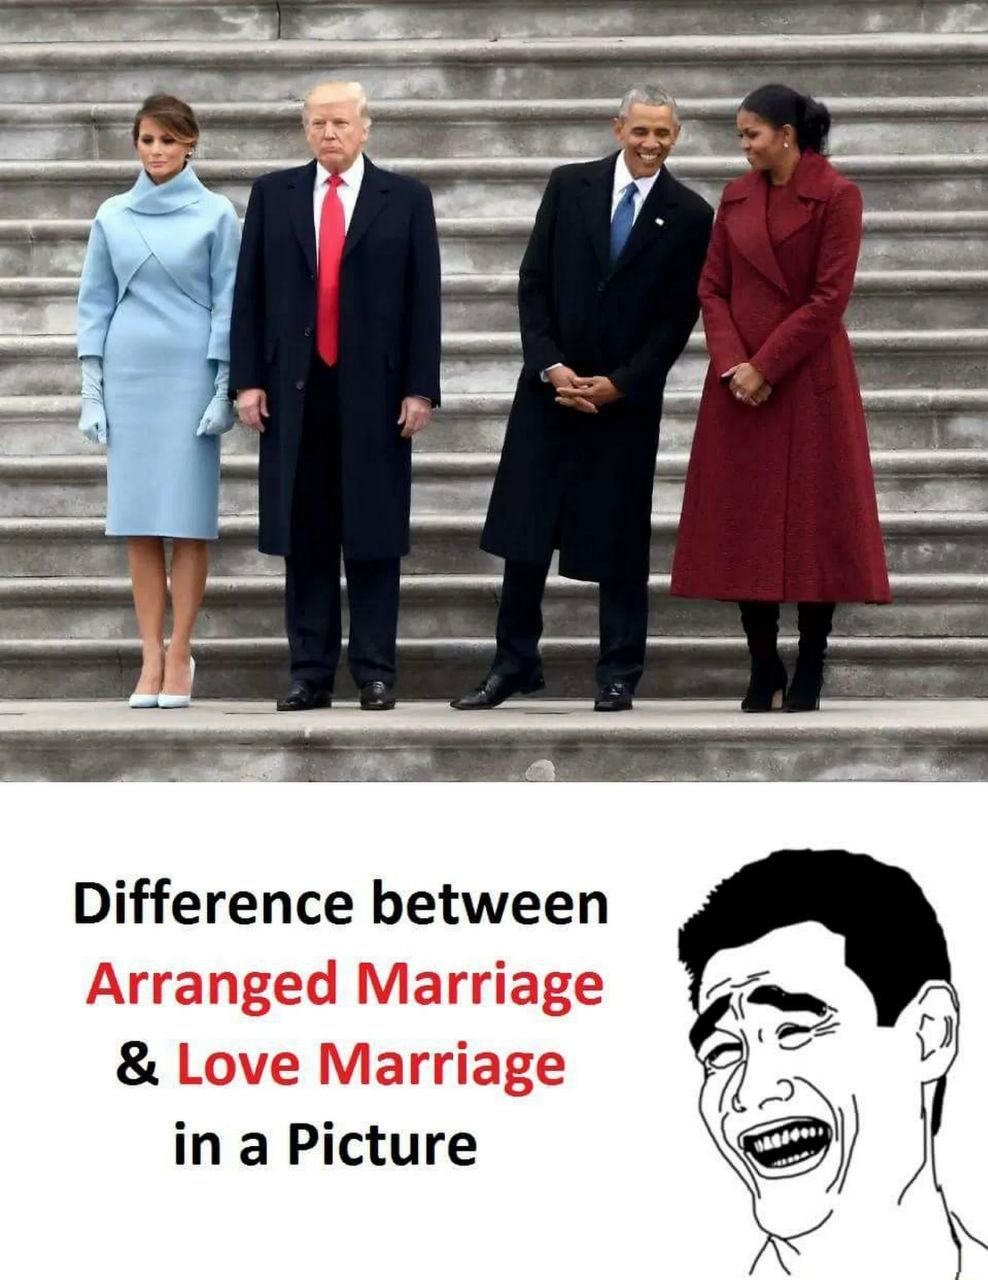 Difference between Arranged Marriage & Love Marriage in a